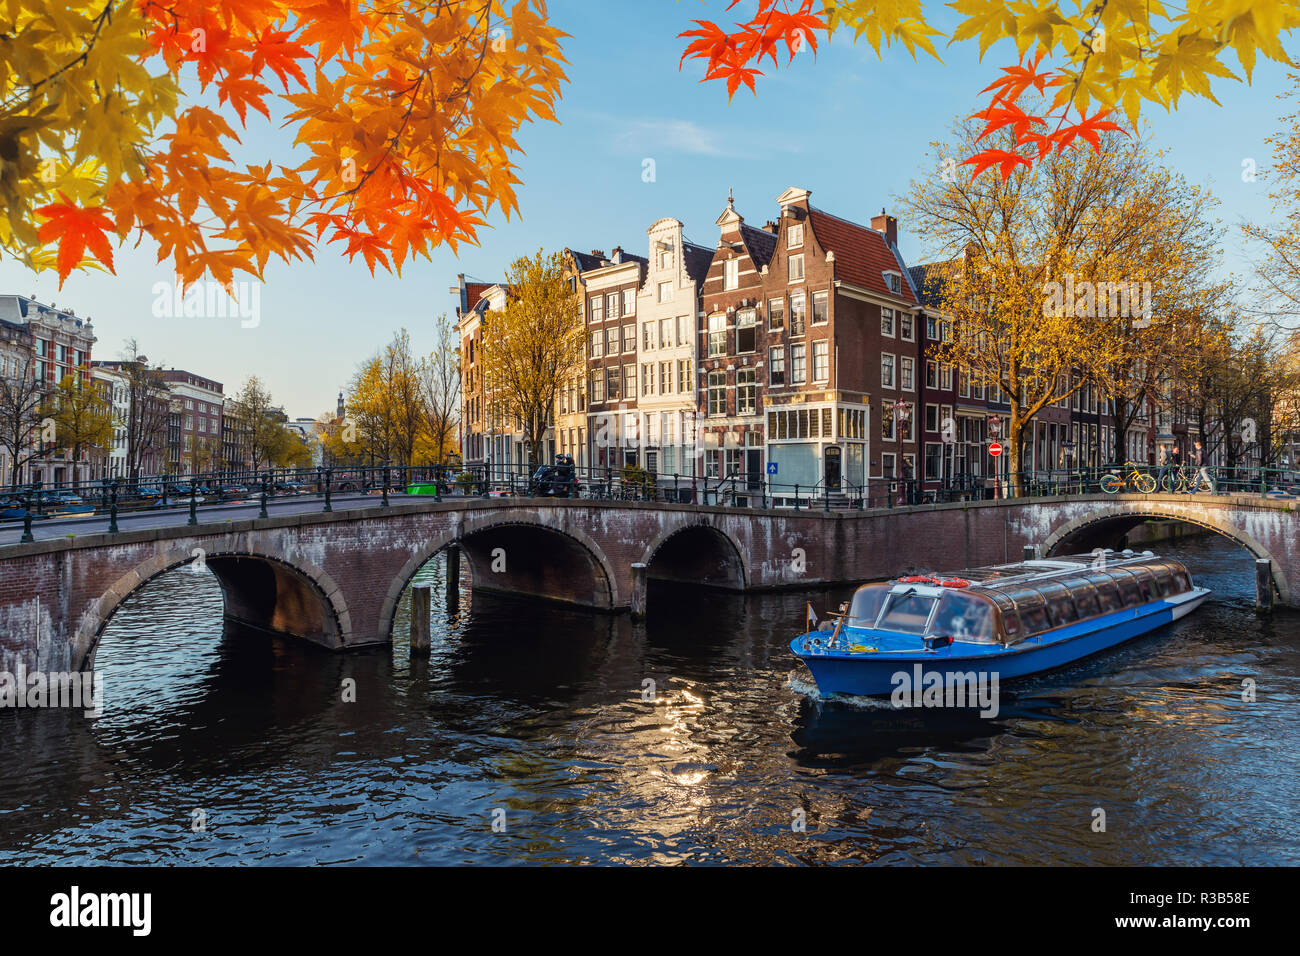 Traditional old houses on canal at fall day in Amsterdam, Netherlands at autumn season. - Stock Image